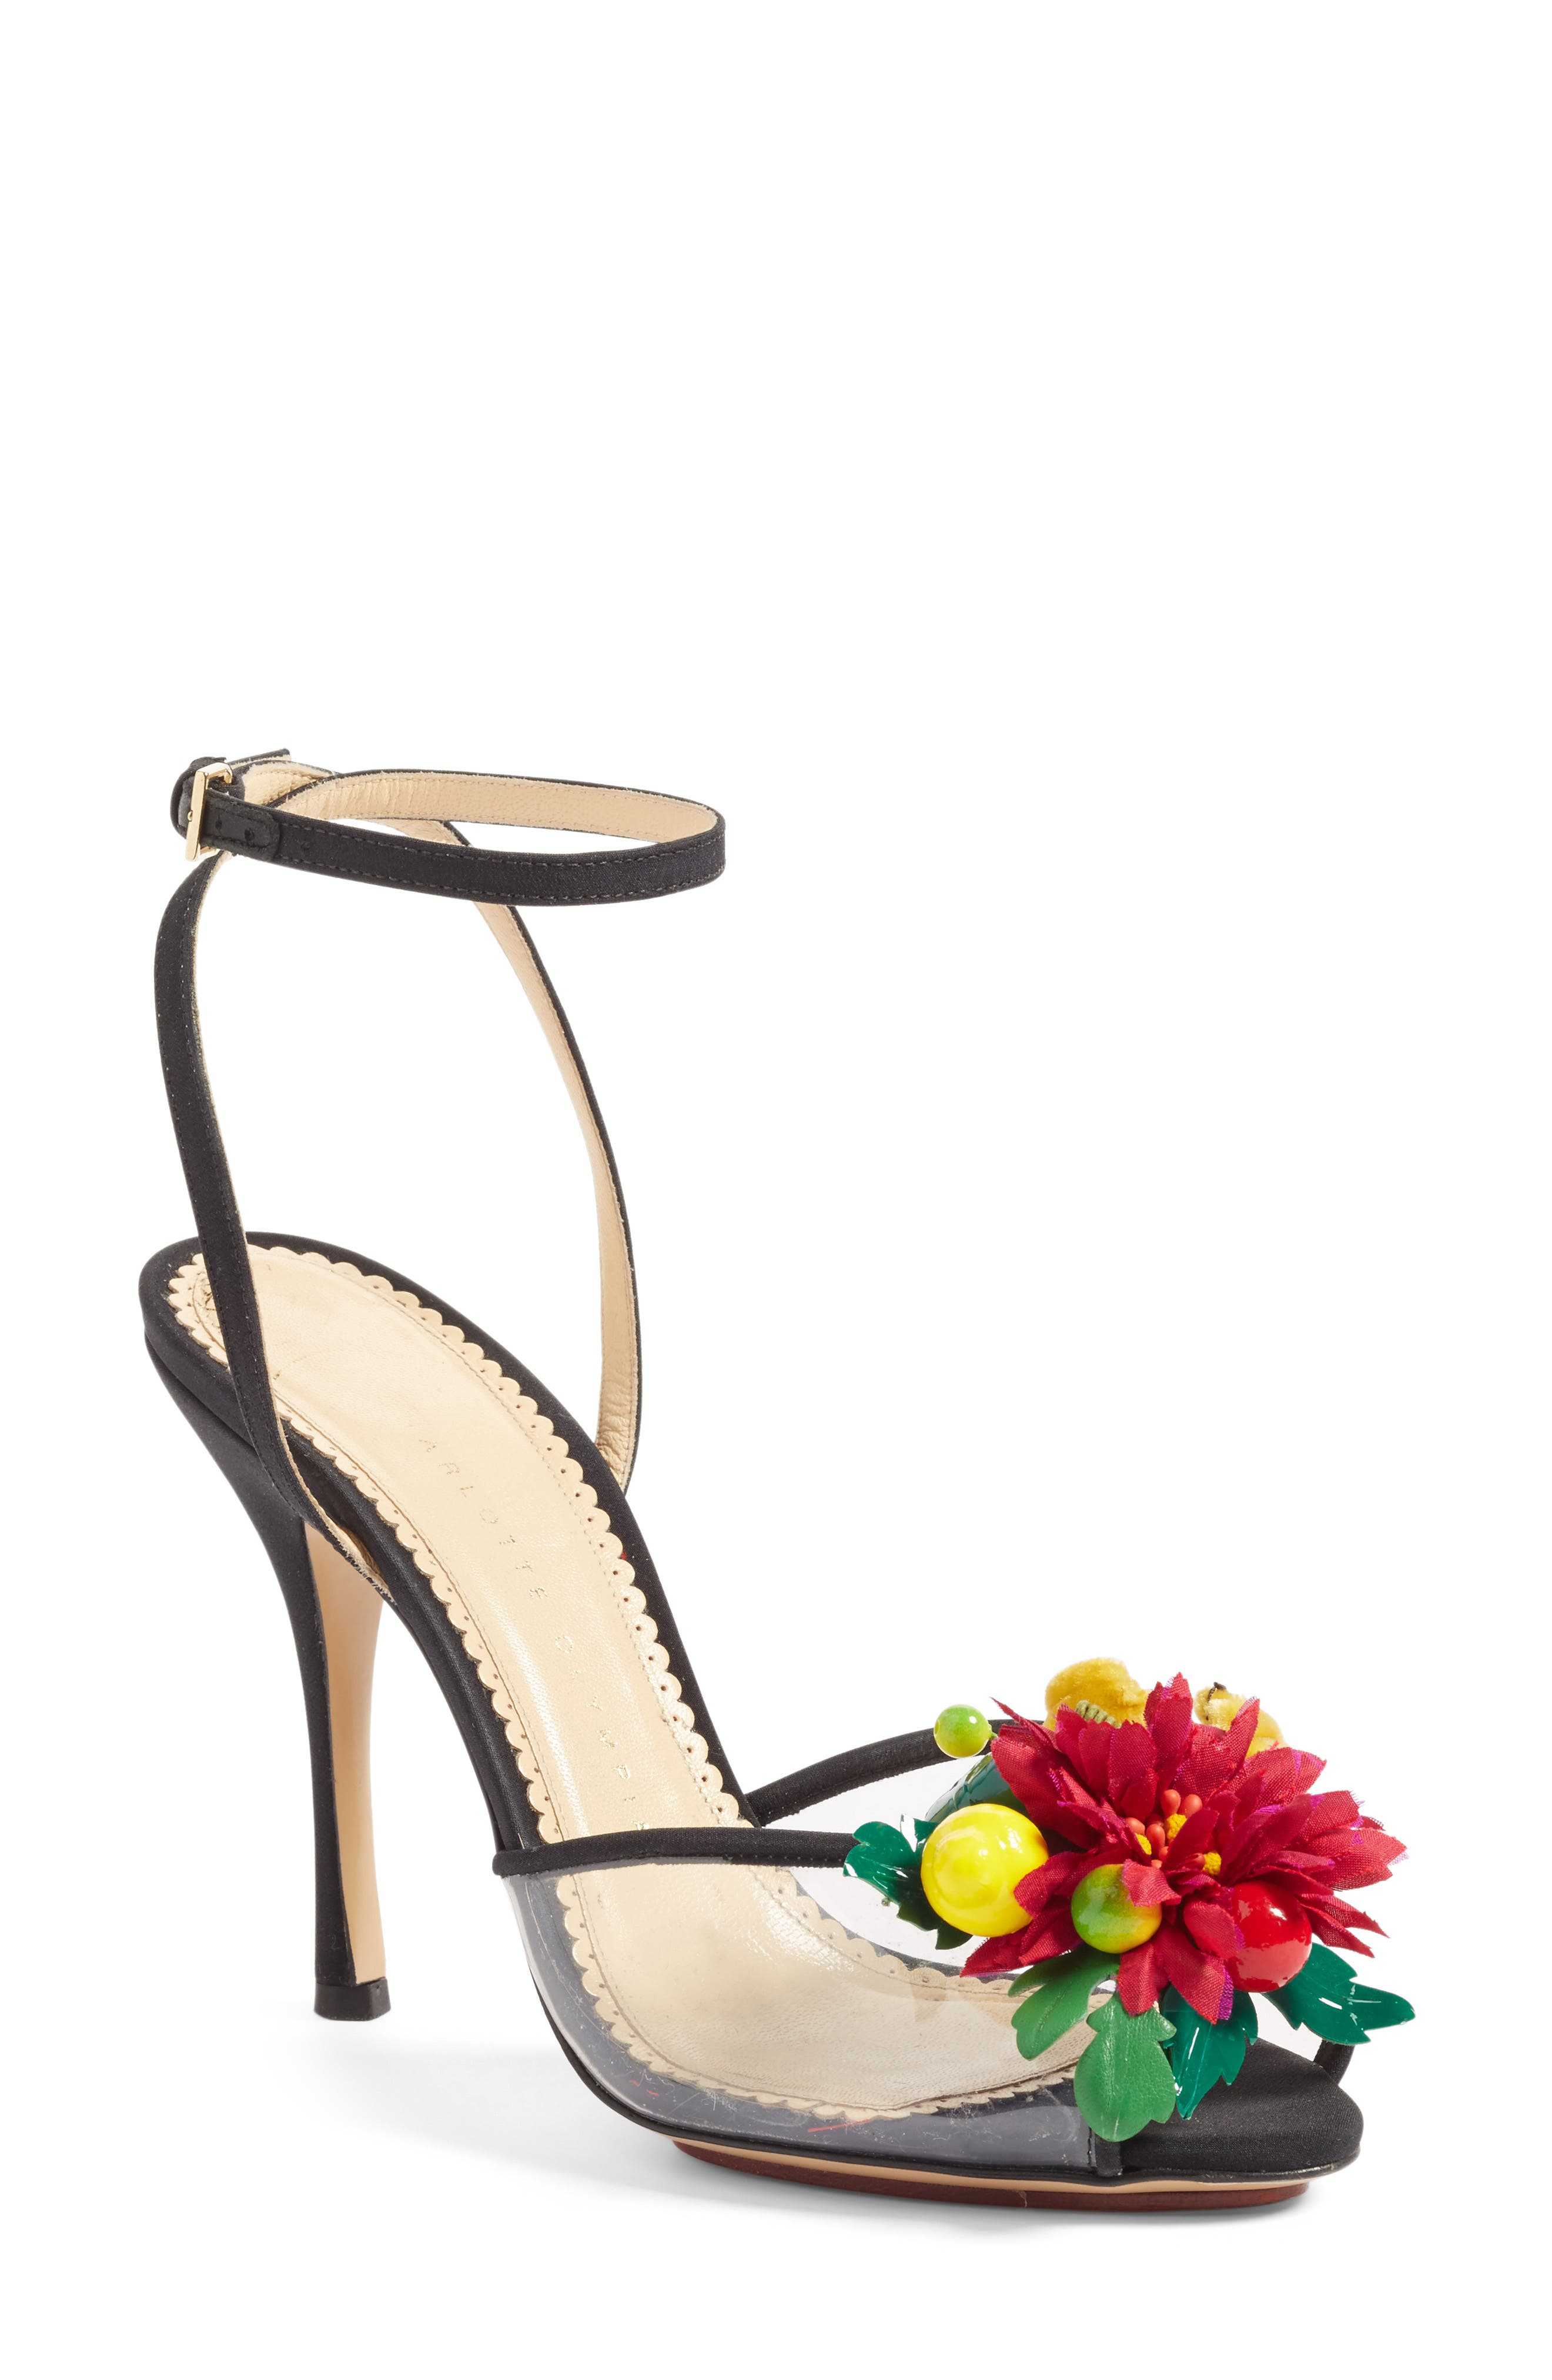 Main Image - Charlotte Olympia Tropicana Ankle Strap Sandal (Women)